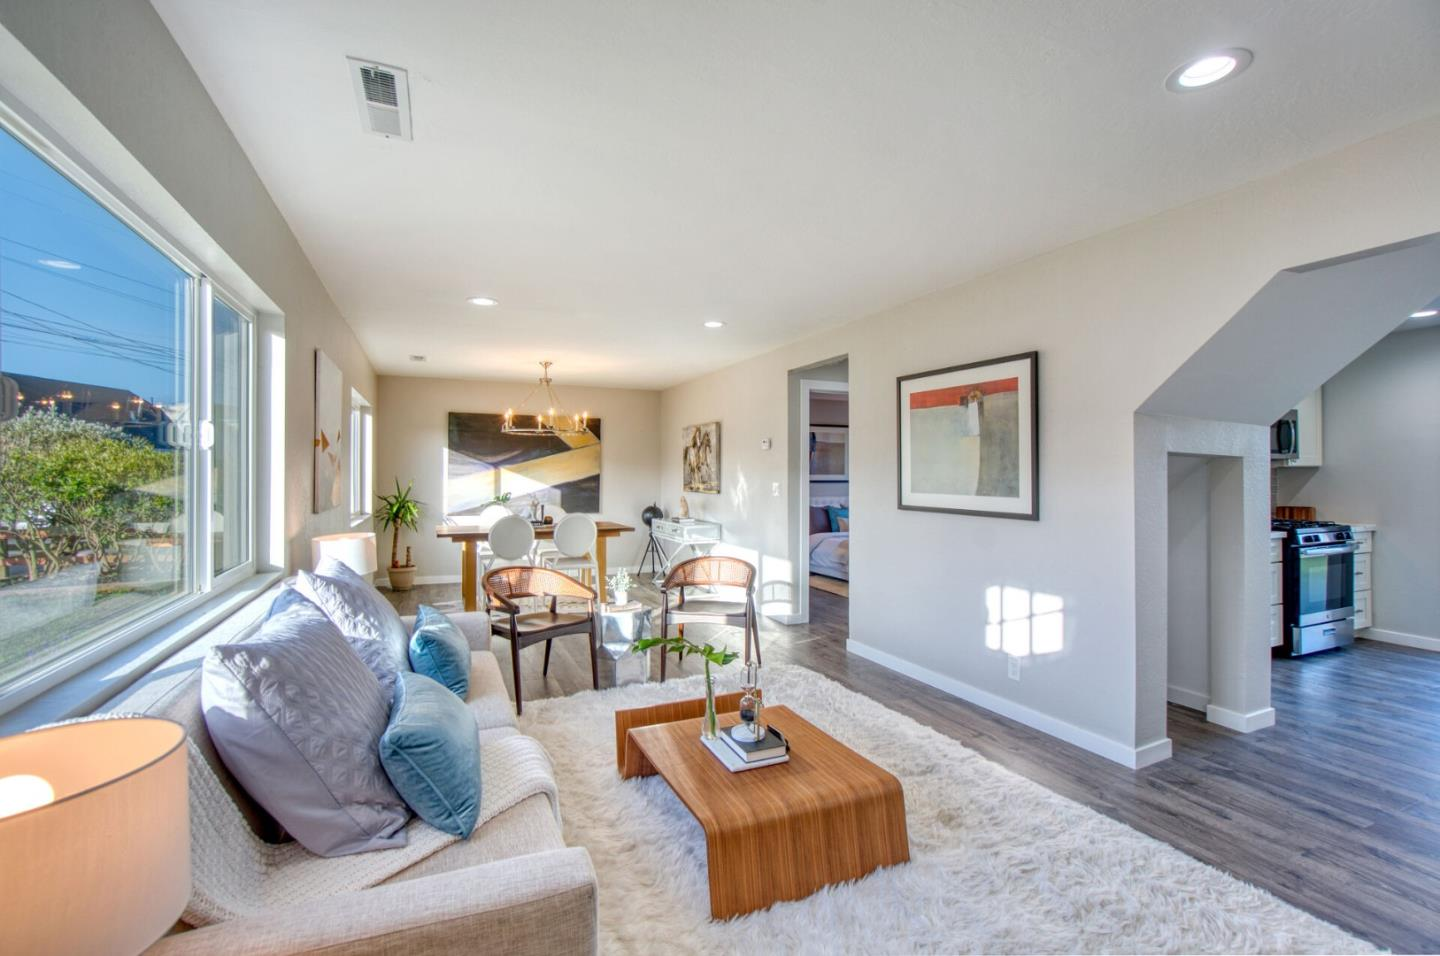 Detail Gallery Image 1 of 14 For 308 Heathcliff Dr, Pacifica, CA 94044 - 3 Beds   2 Baths